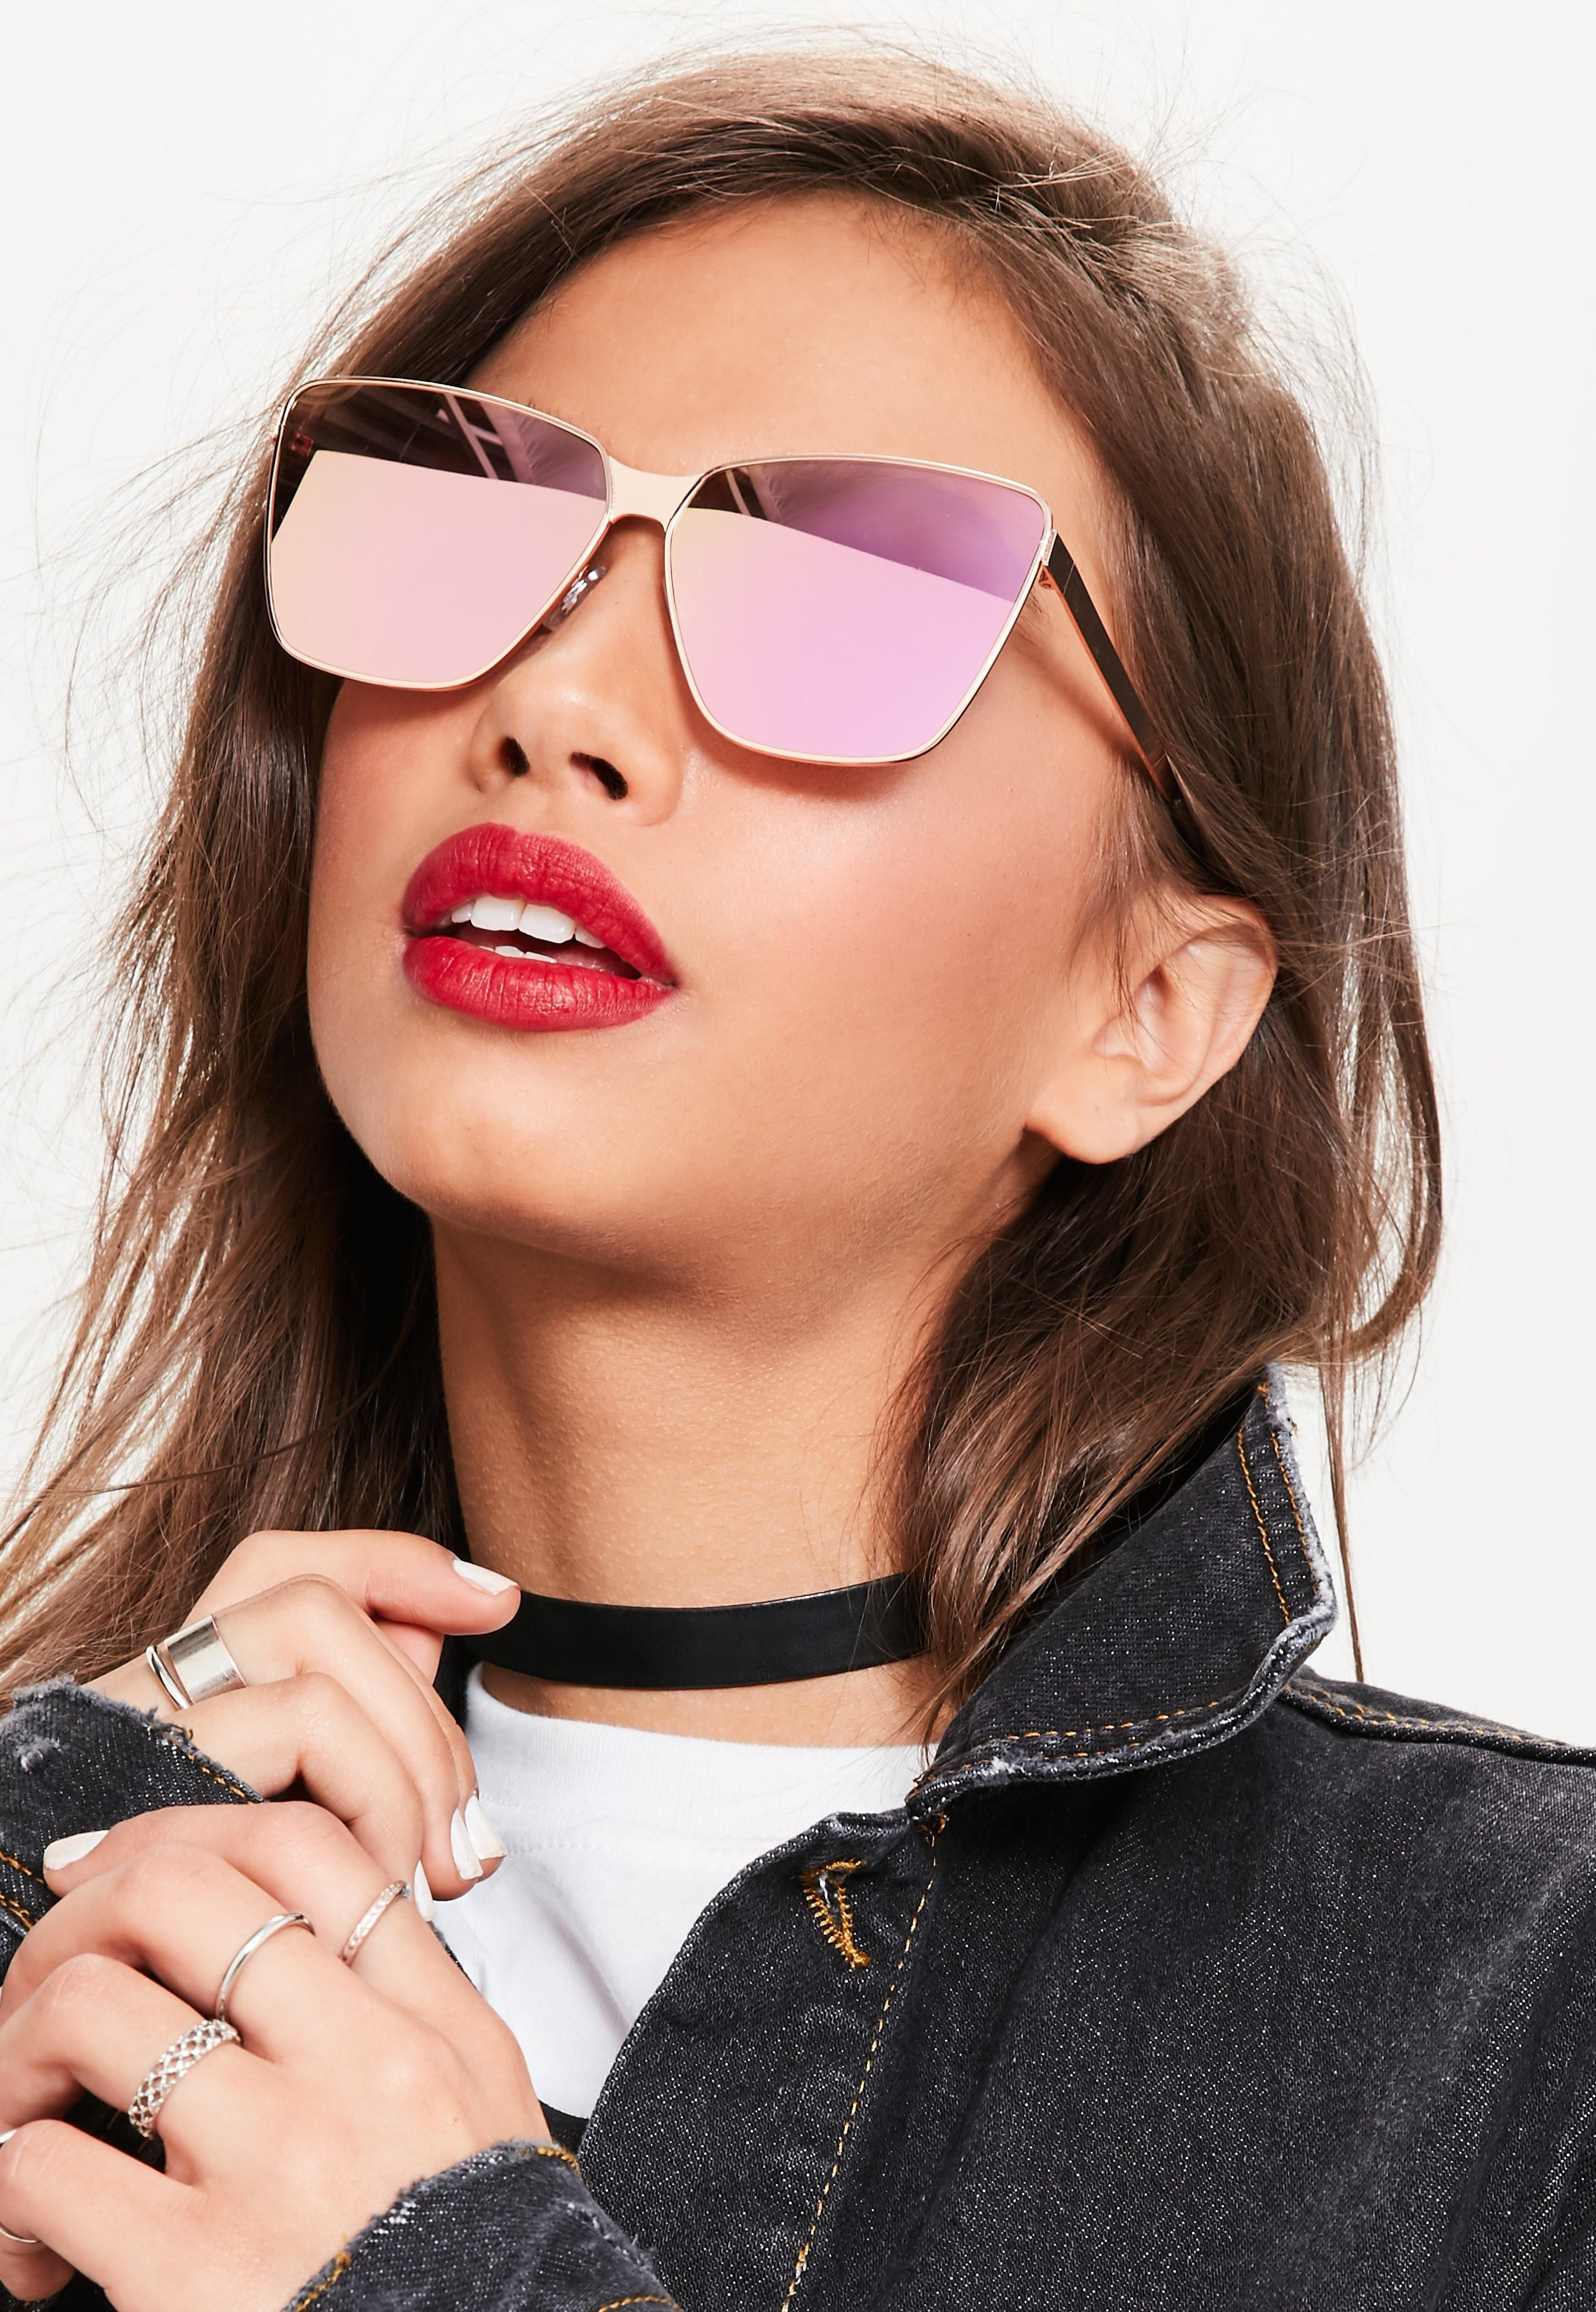 Image result for alissa violet sunglasses (With images